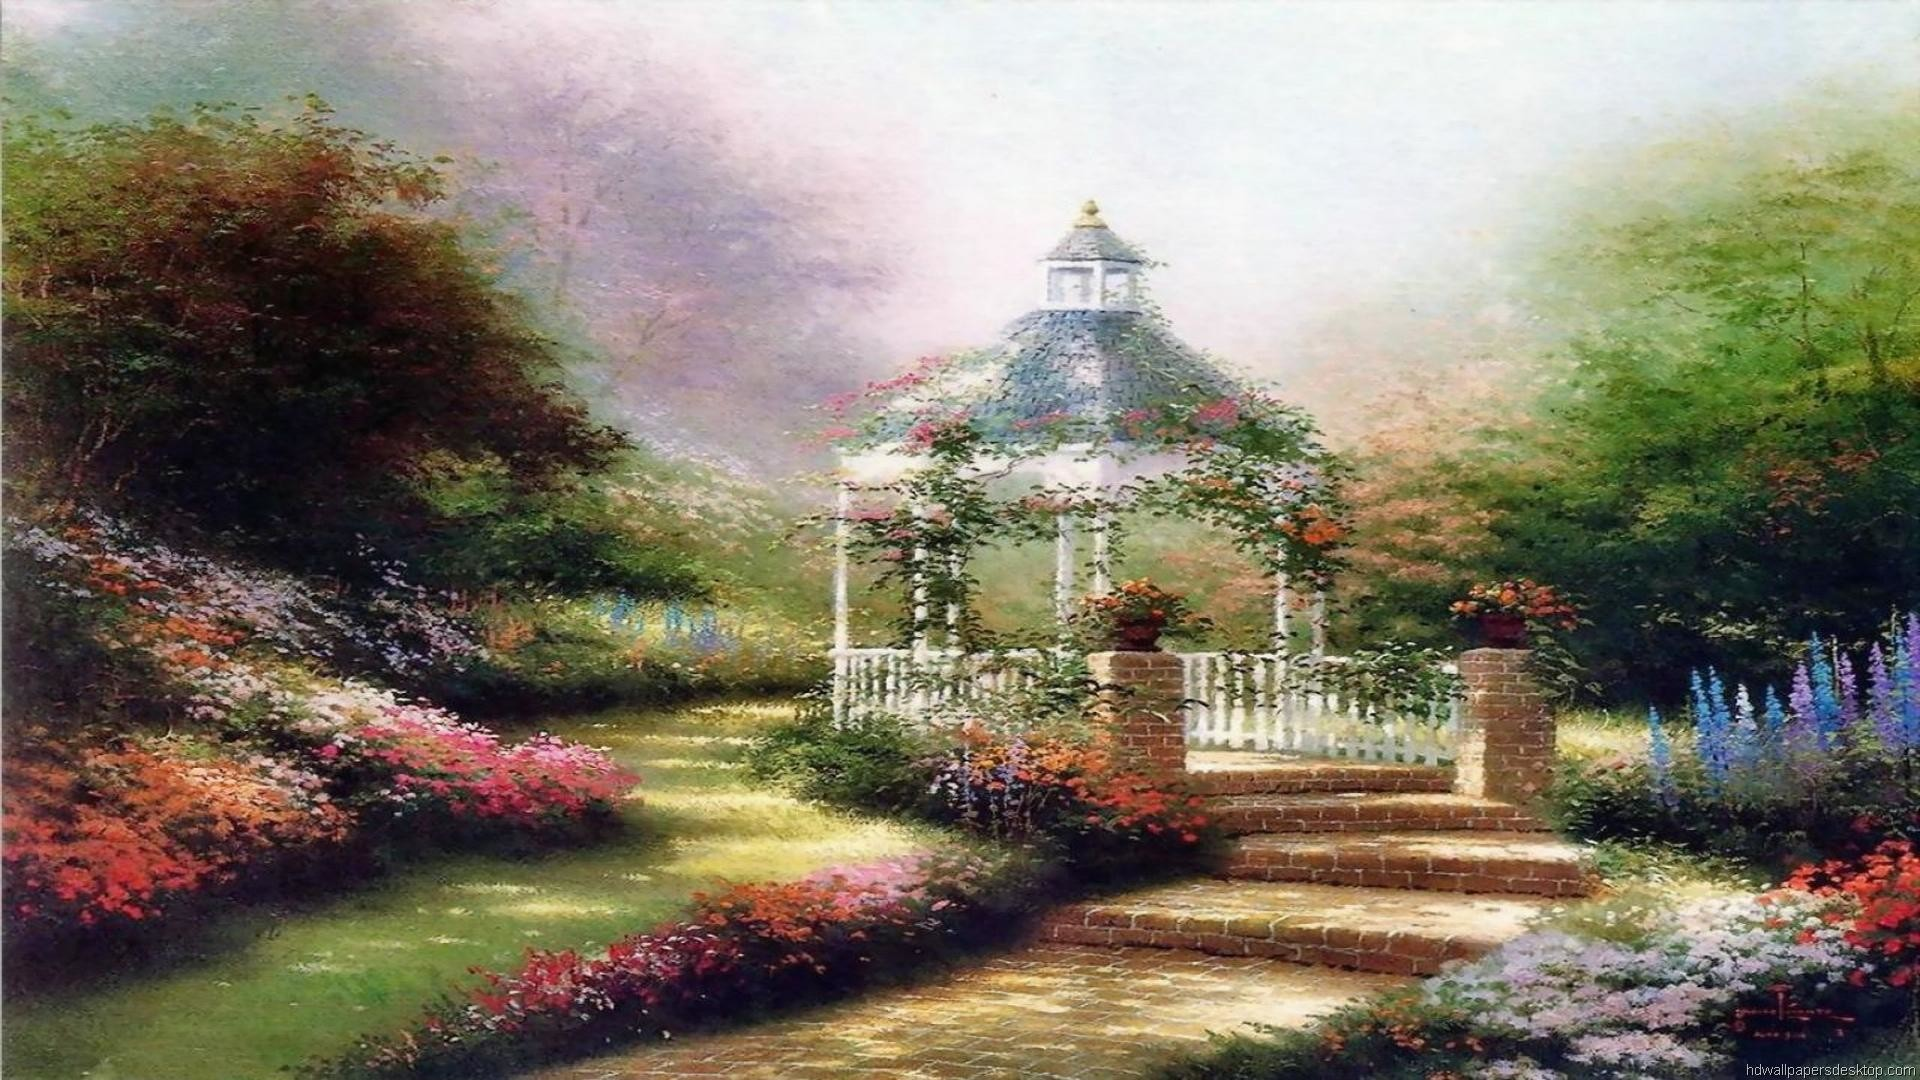 1920x1080 Thomas Kinkade Wallpaper, Paintings, Art, HD, Desktop, Thomas Kinkade 6